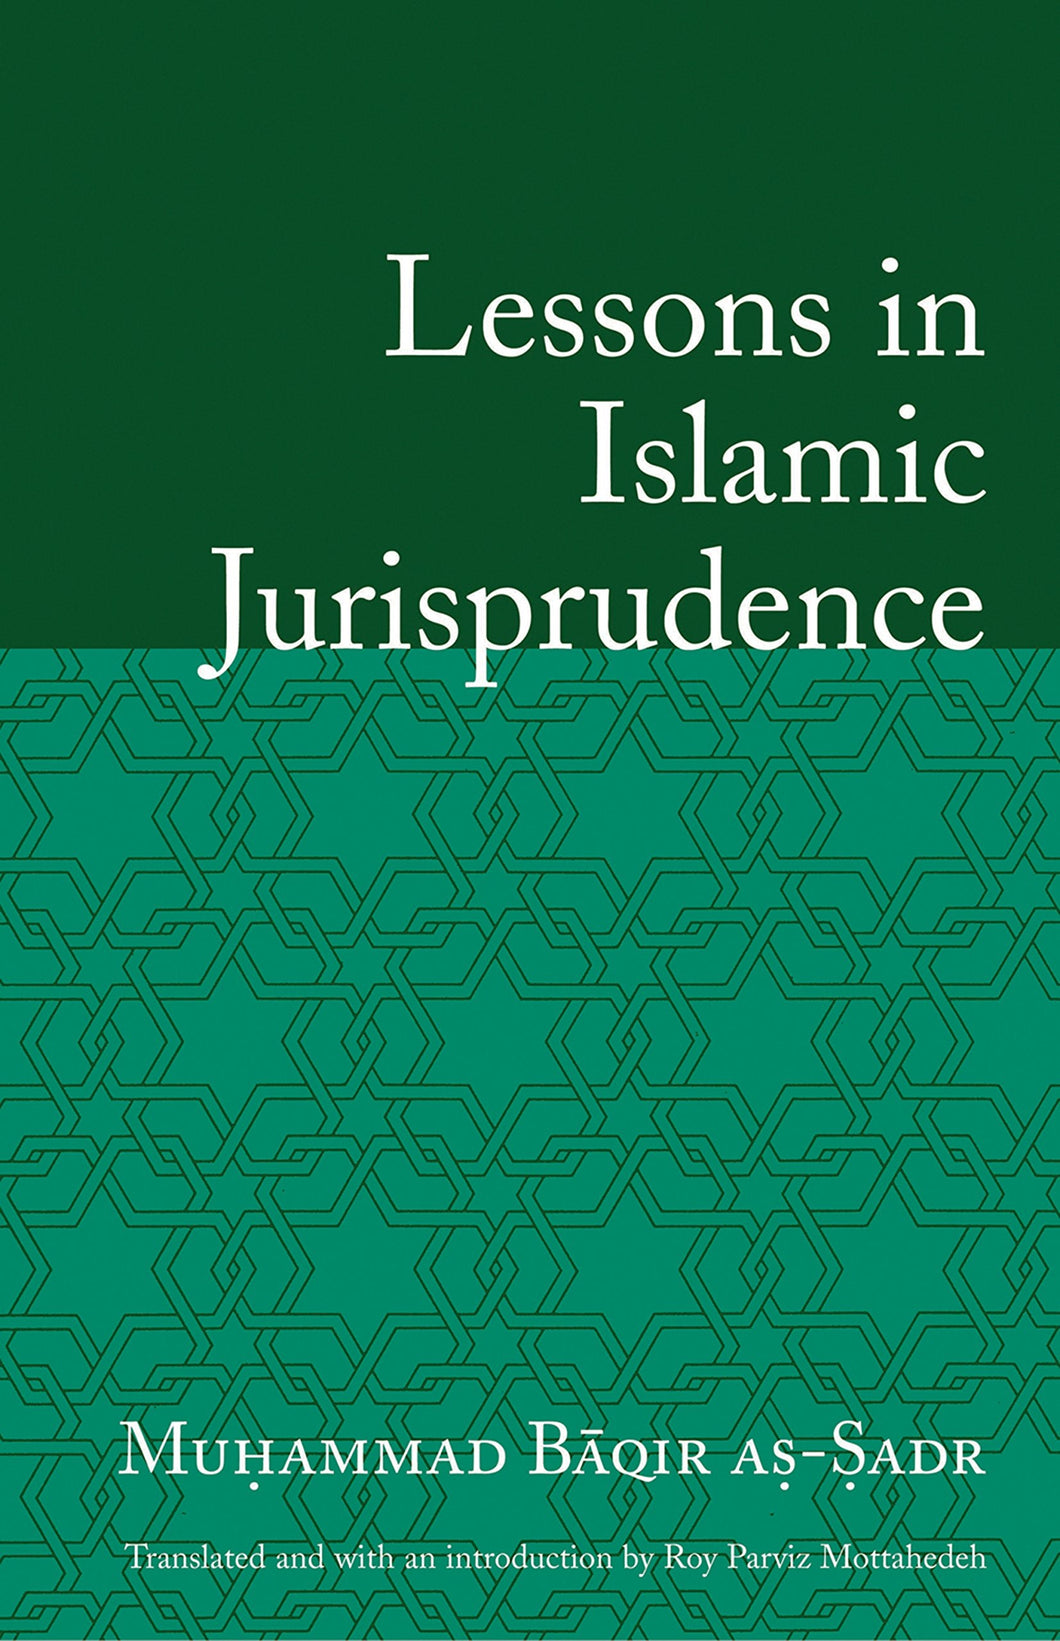 Lessons in Islamic Jurisprudence-al-Burāq